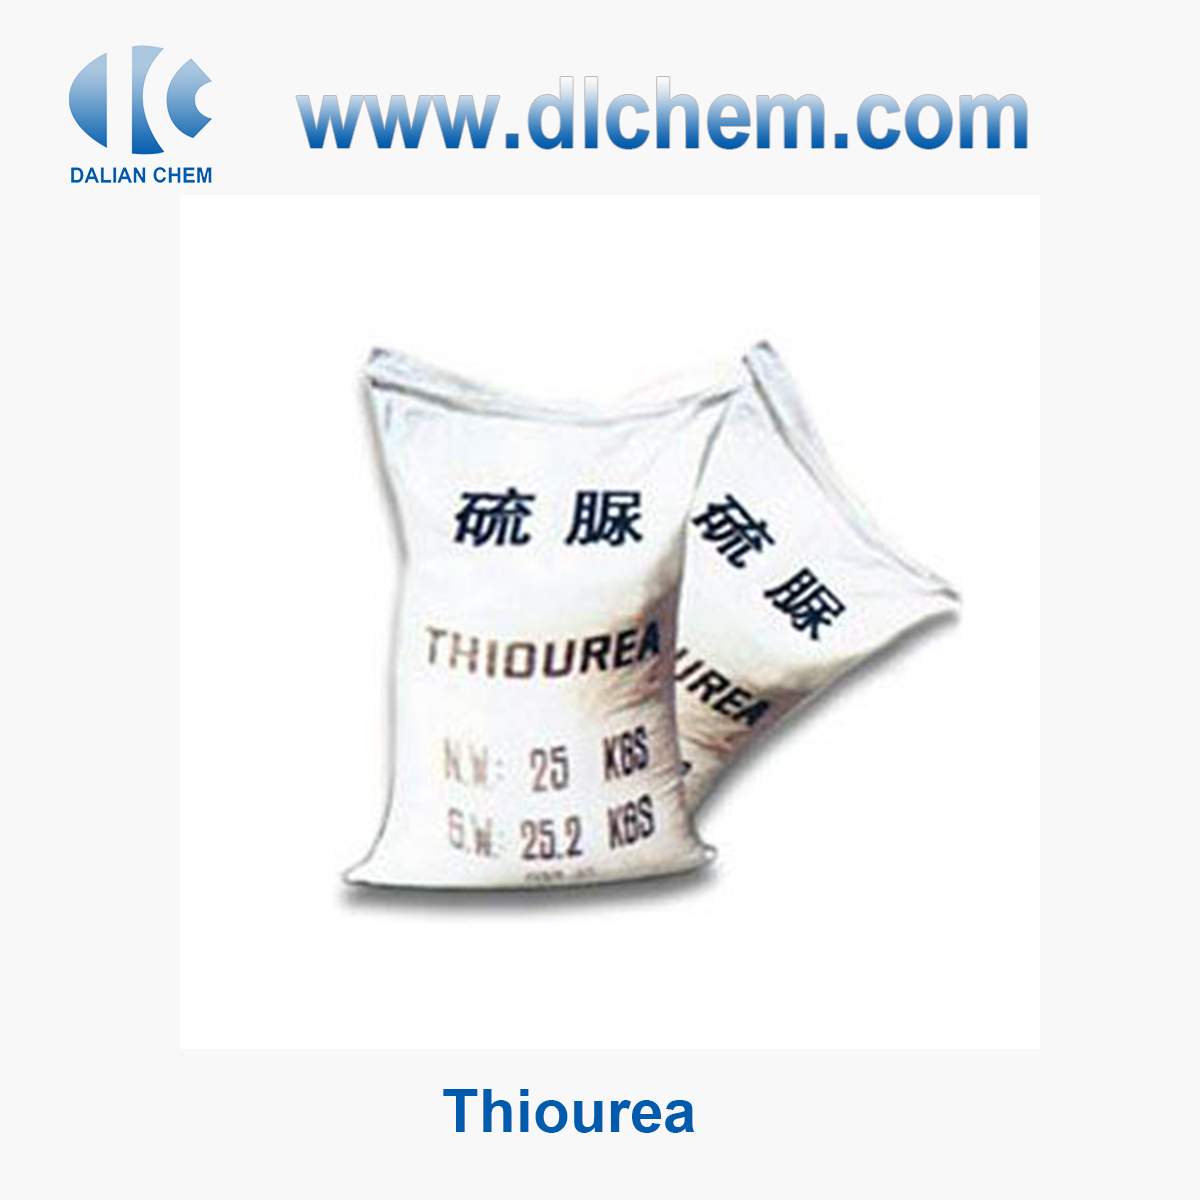 Wholesale Thiourea 98.5% Factory Supplier in China